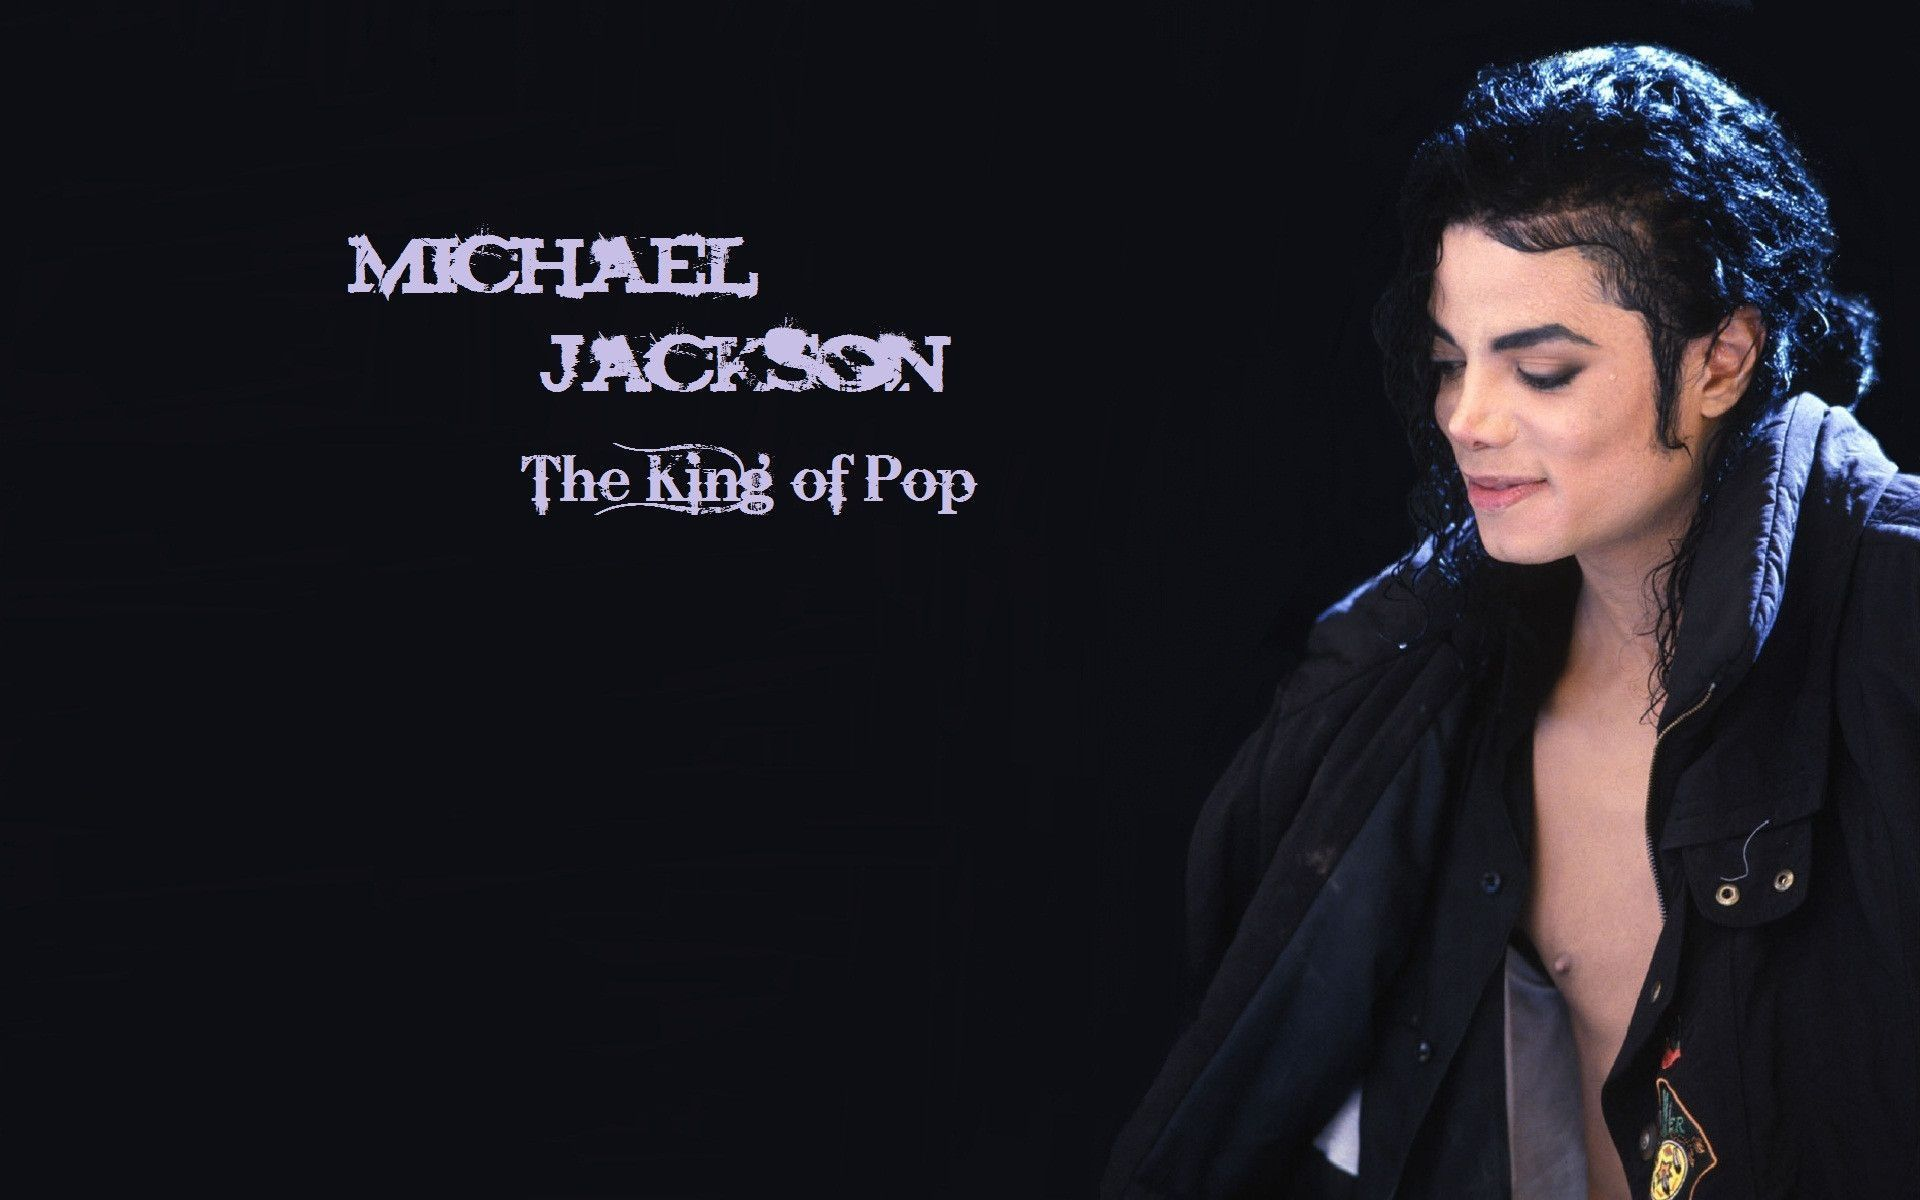 michael jackson wallpapers pictures images | hd wallpapers